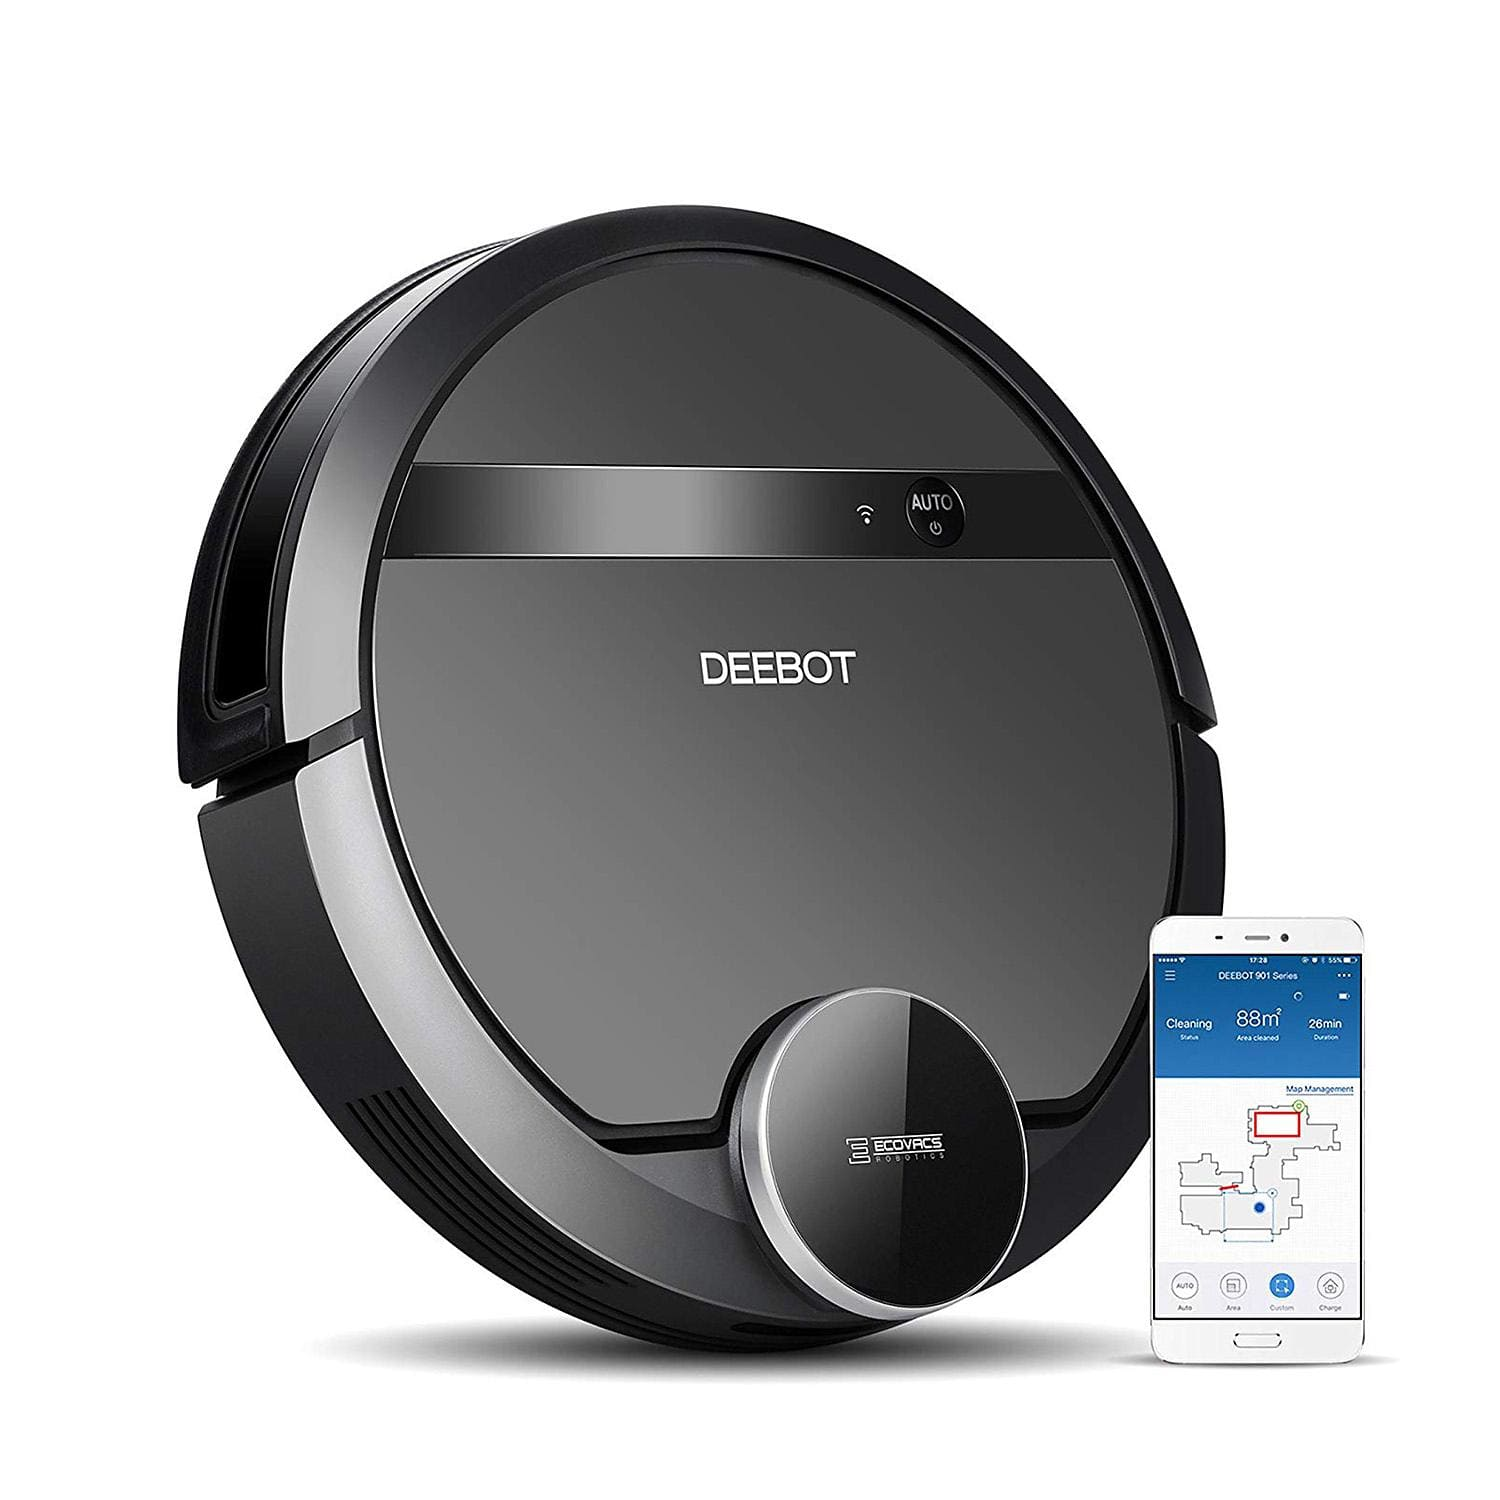 Ecovacs Deebot 901 Robotic Vacuum Cleaner for 250 at Sam's club